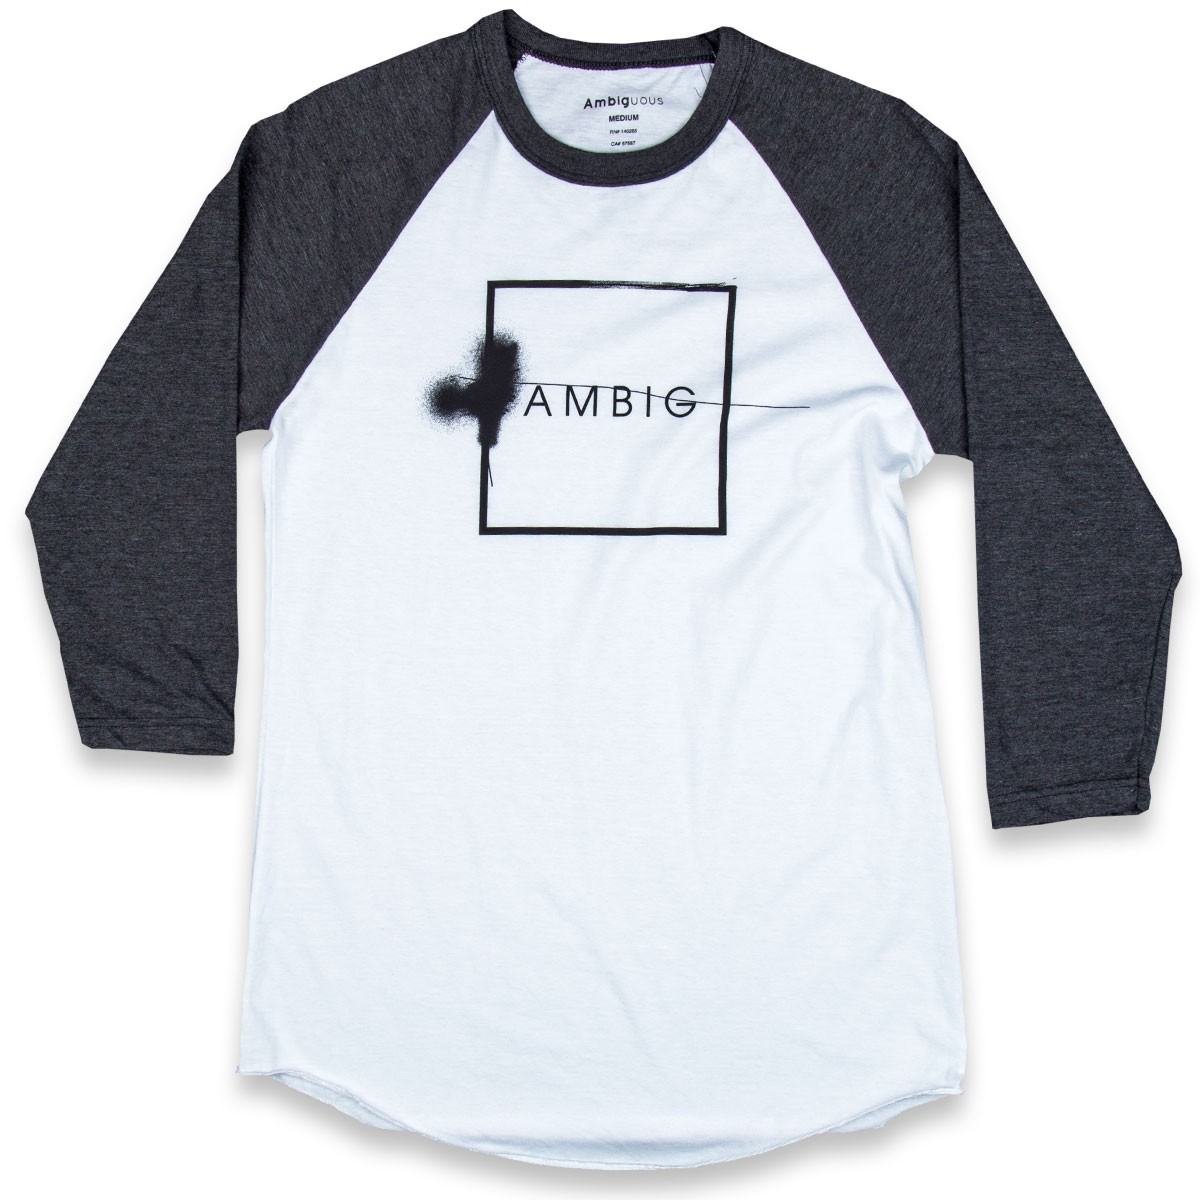 Ambig Ambig Box Raglan T-Shirt - White/Charcoal Heather